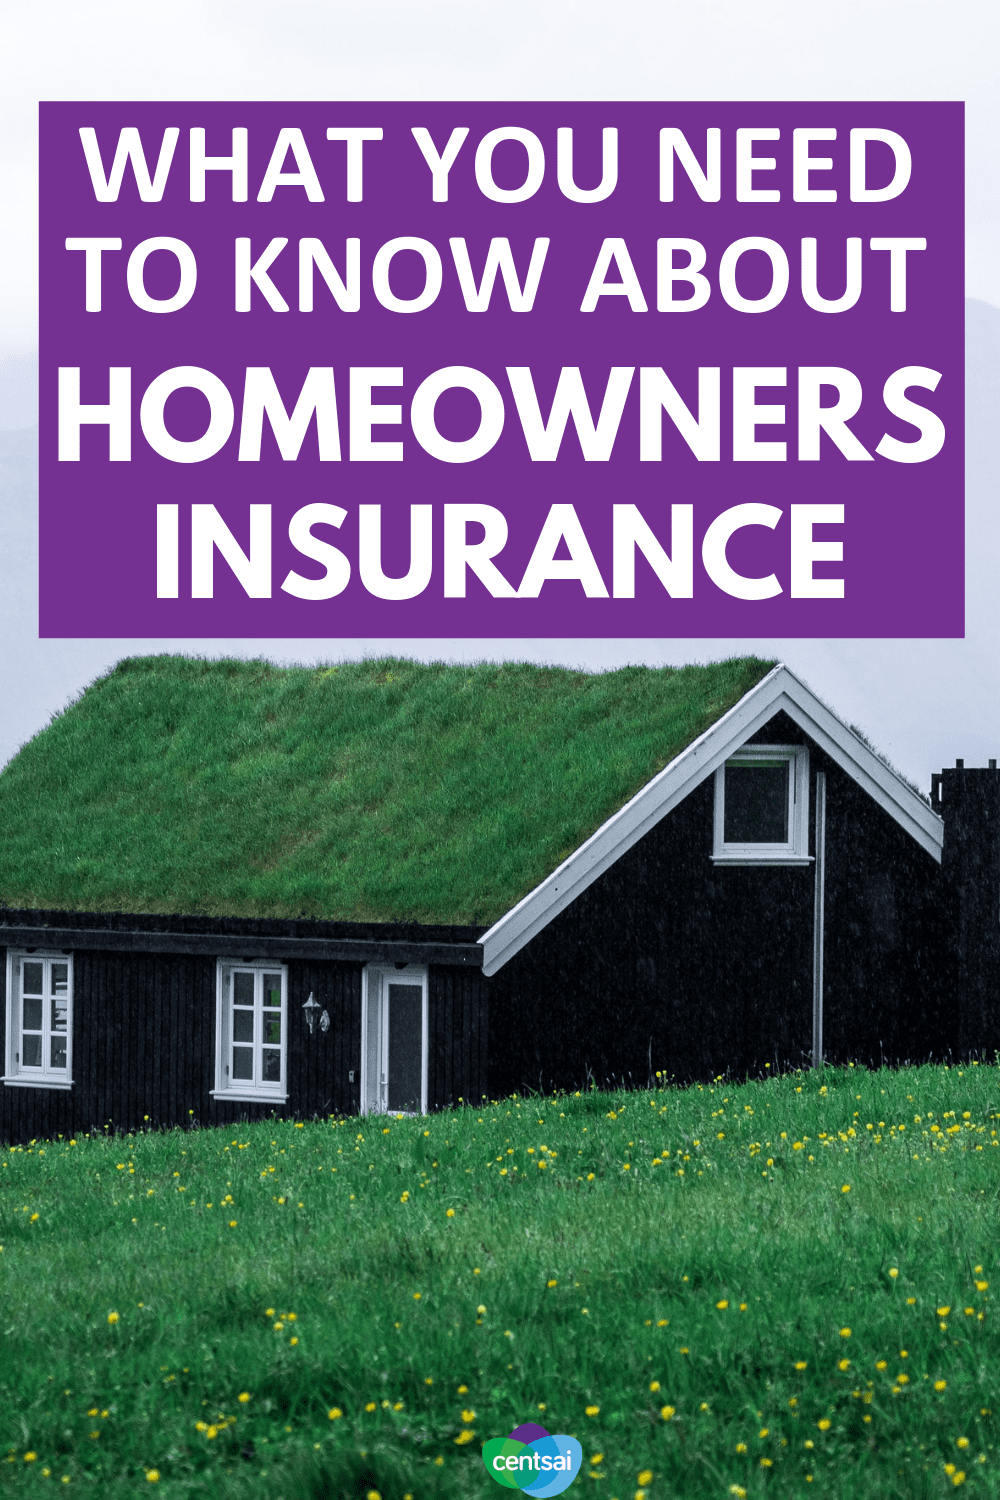 Getting the right policy for your house can be overwhelming. Check out our how to buy guide and tips to find what you need to know about #homeownersinsurance